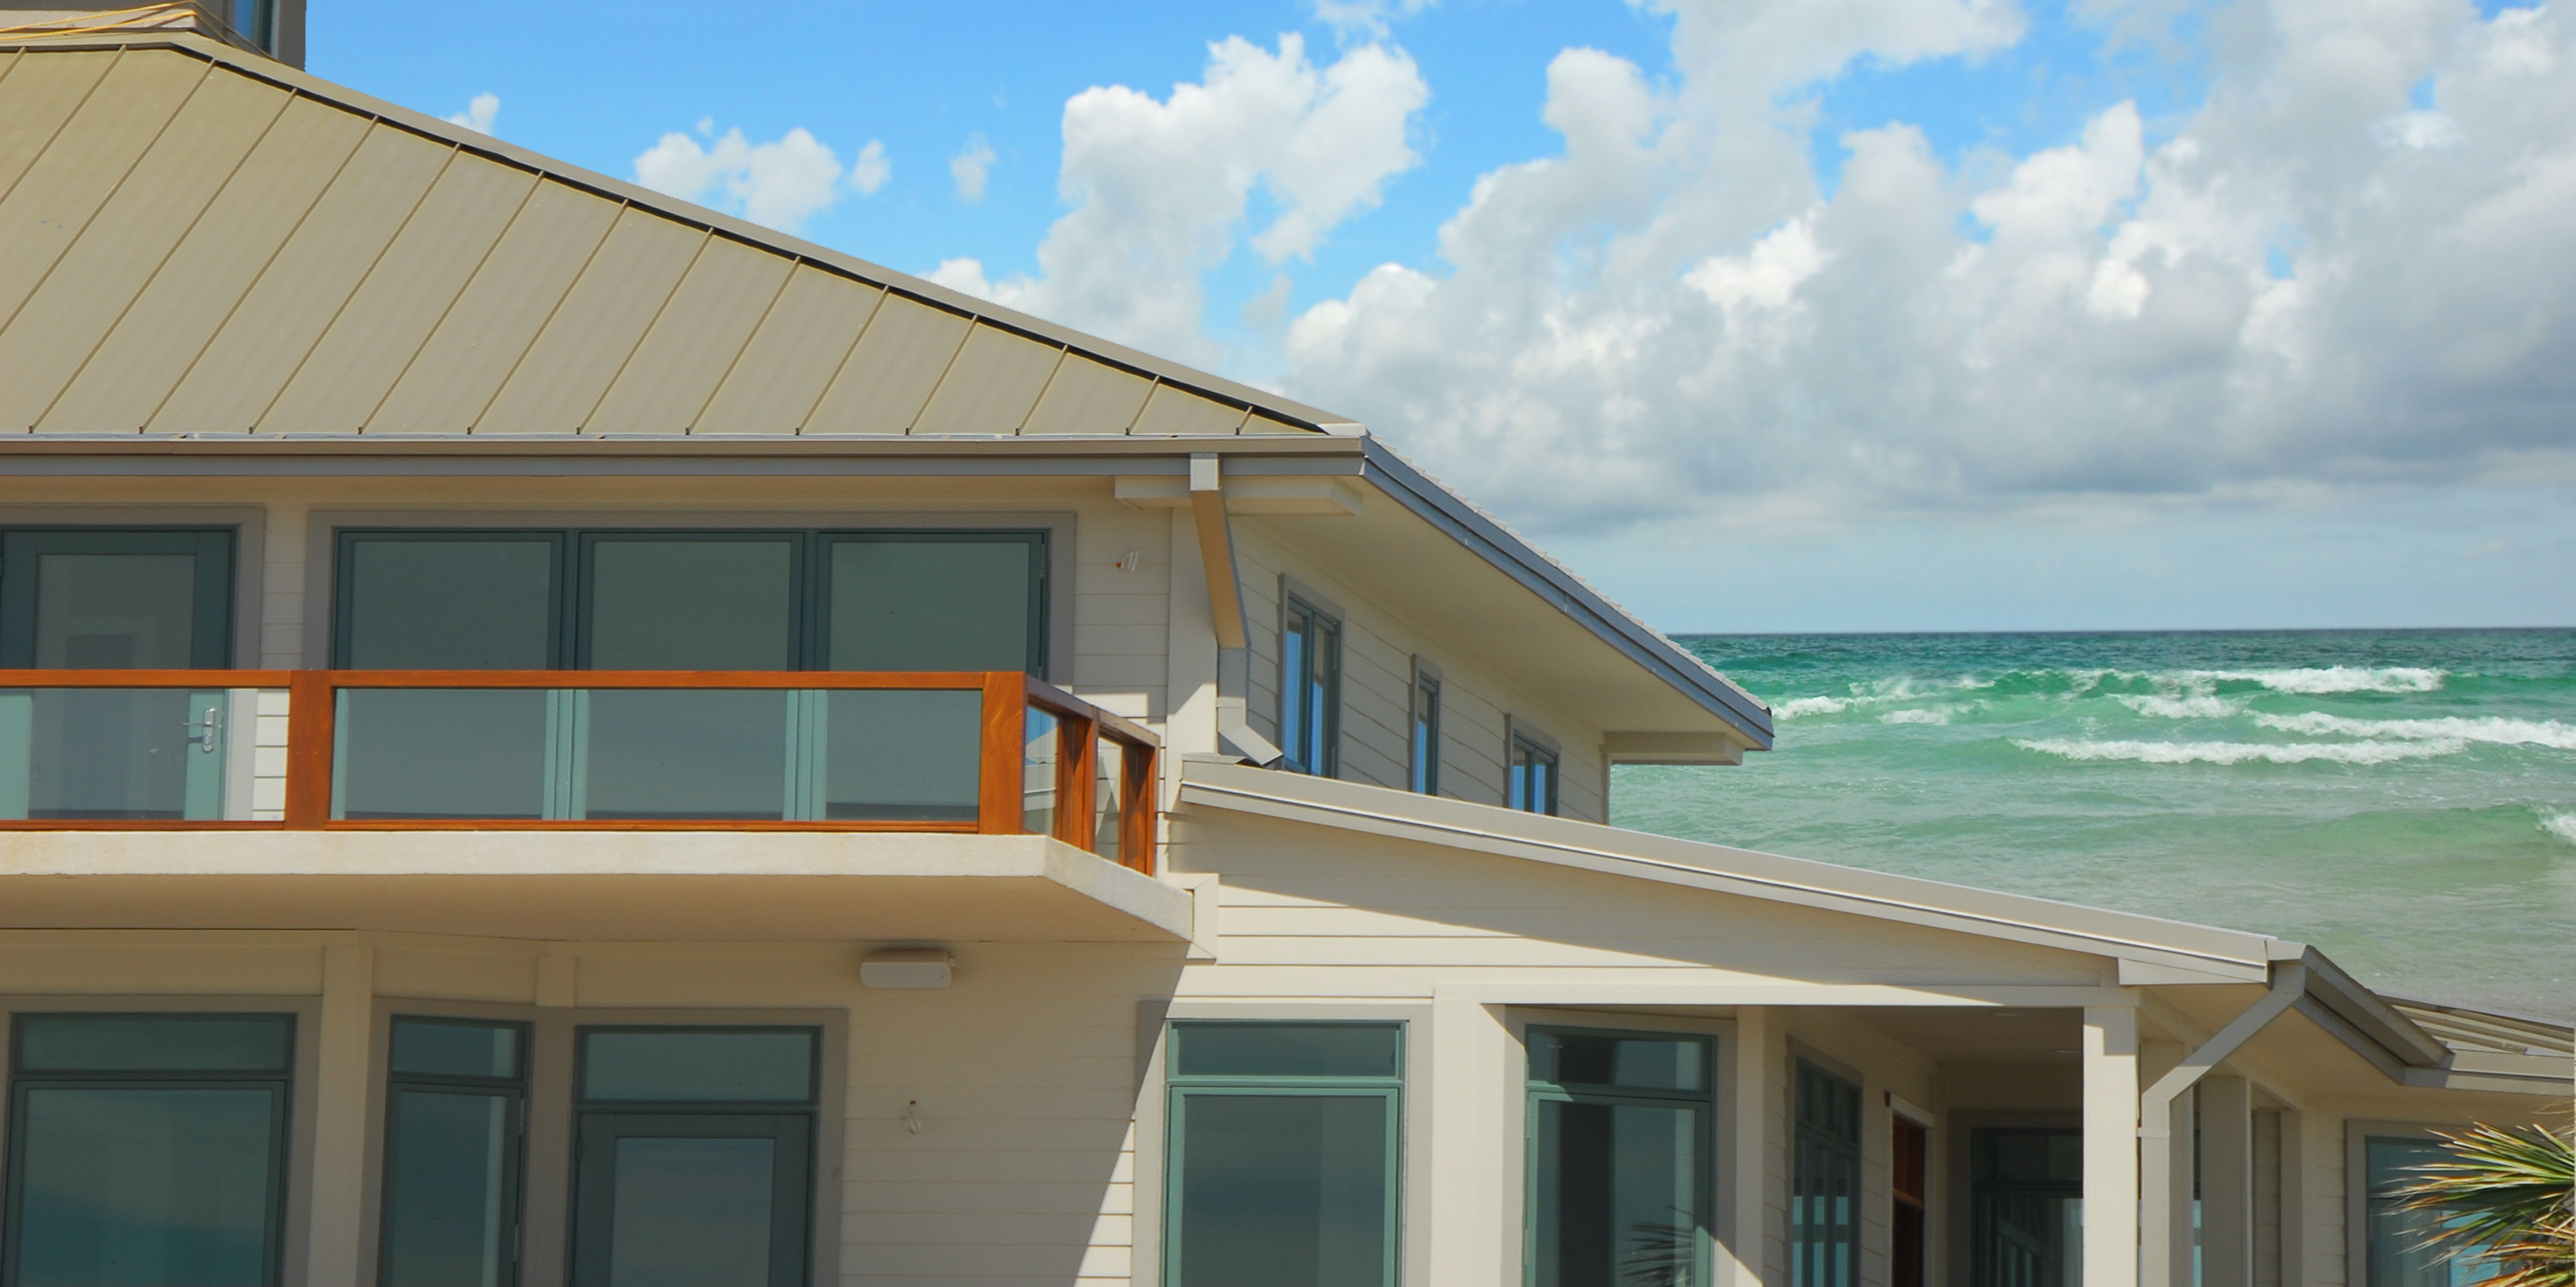 3 Hurricane Windows For Increasing Your Home's Curb Appeal